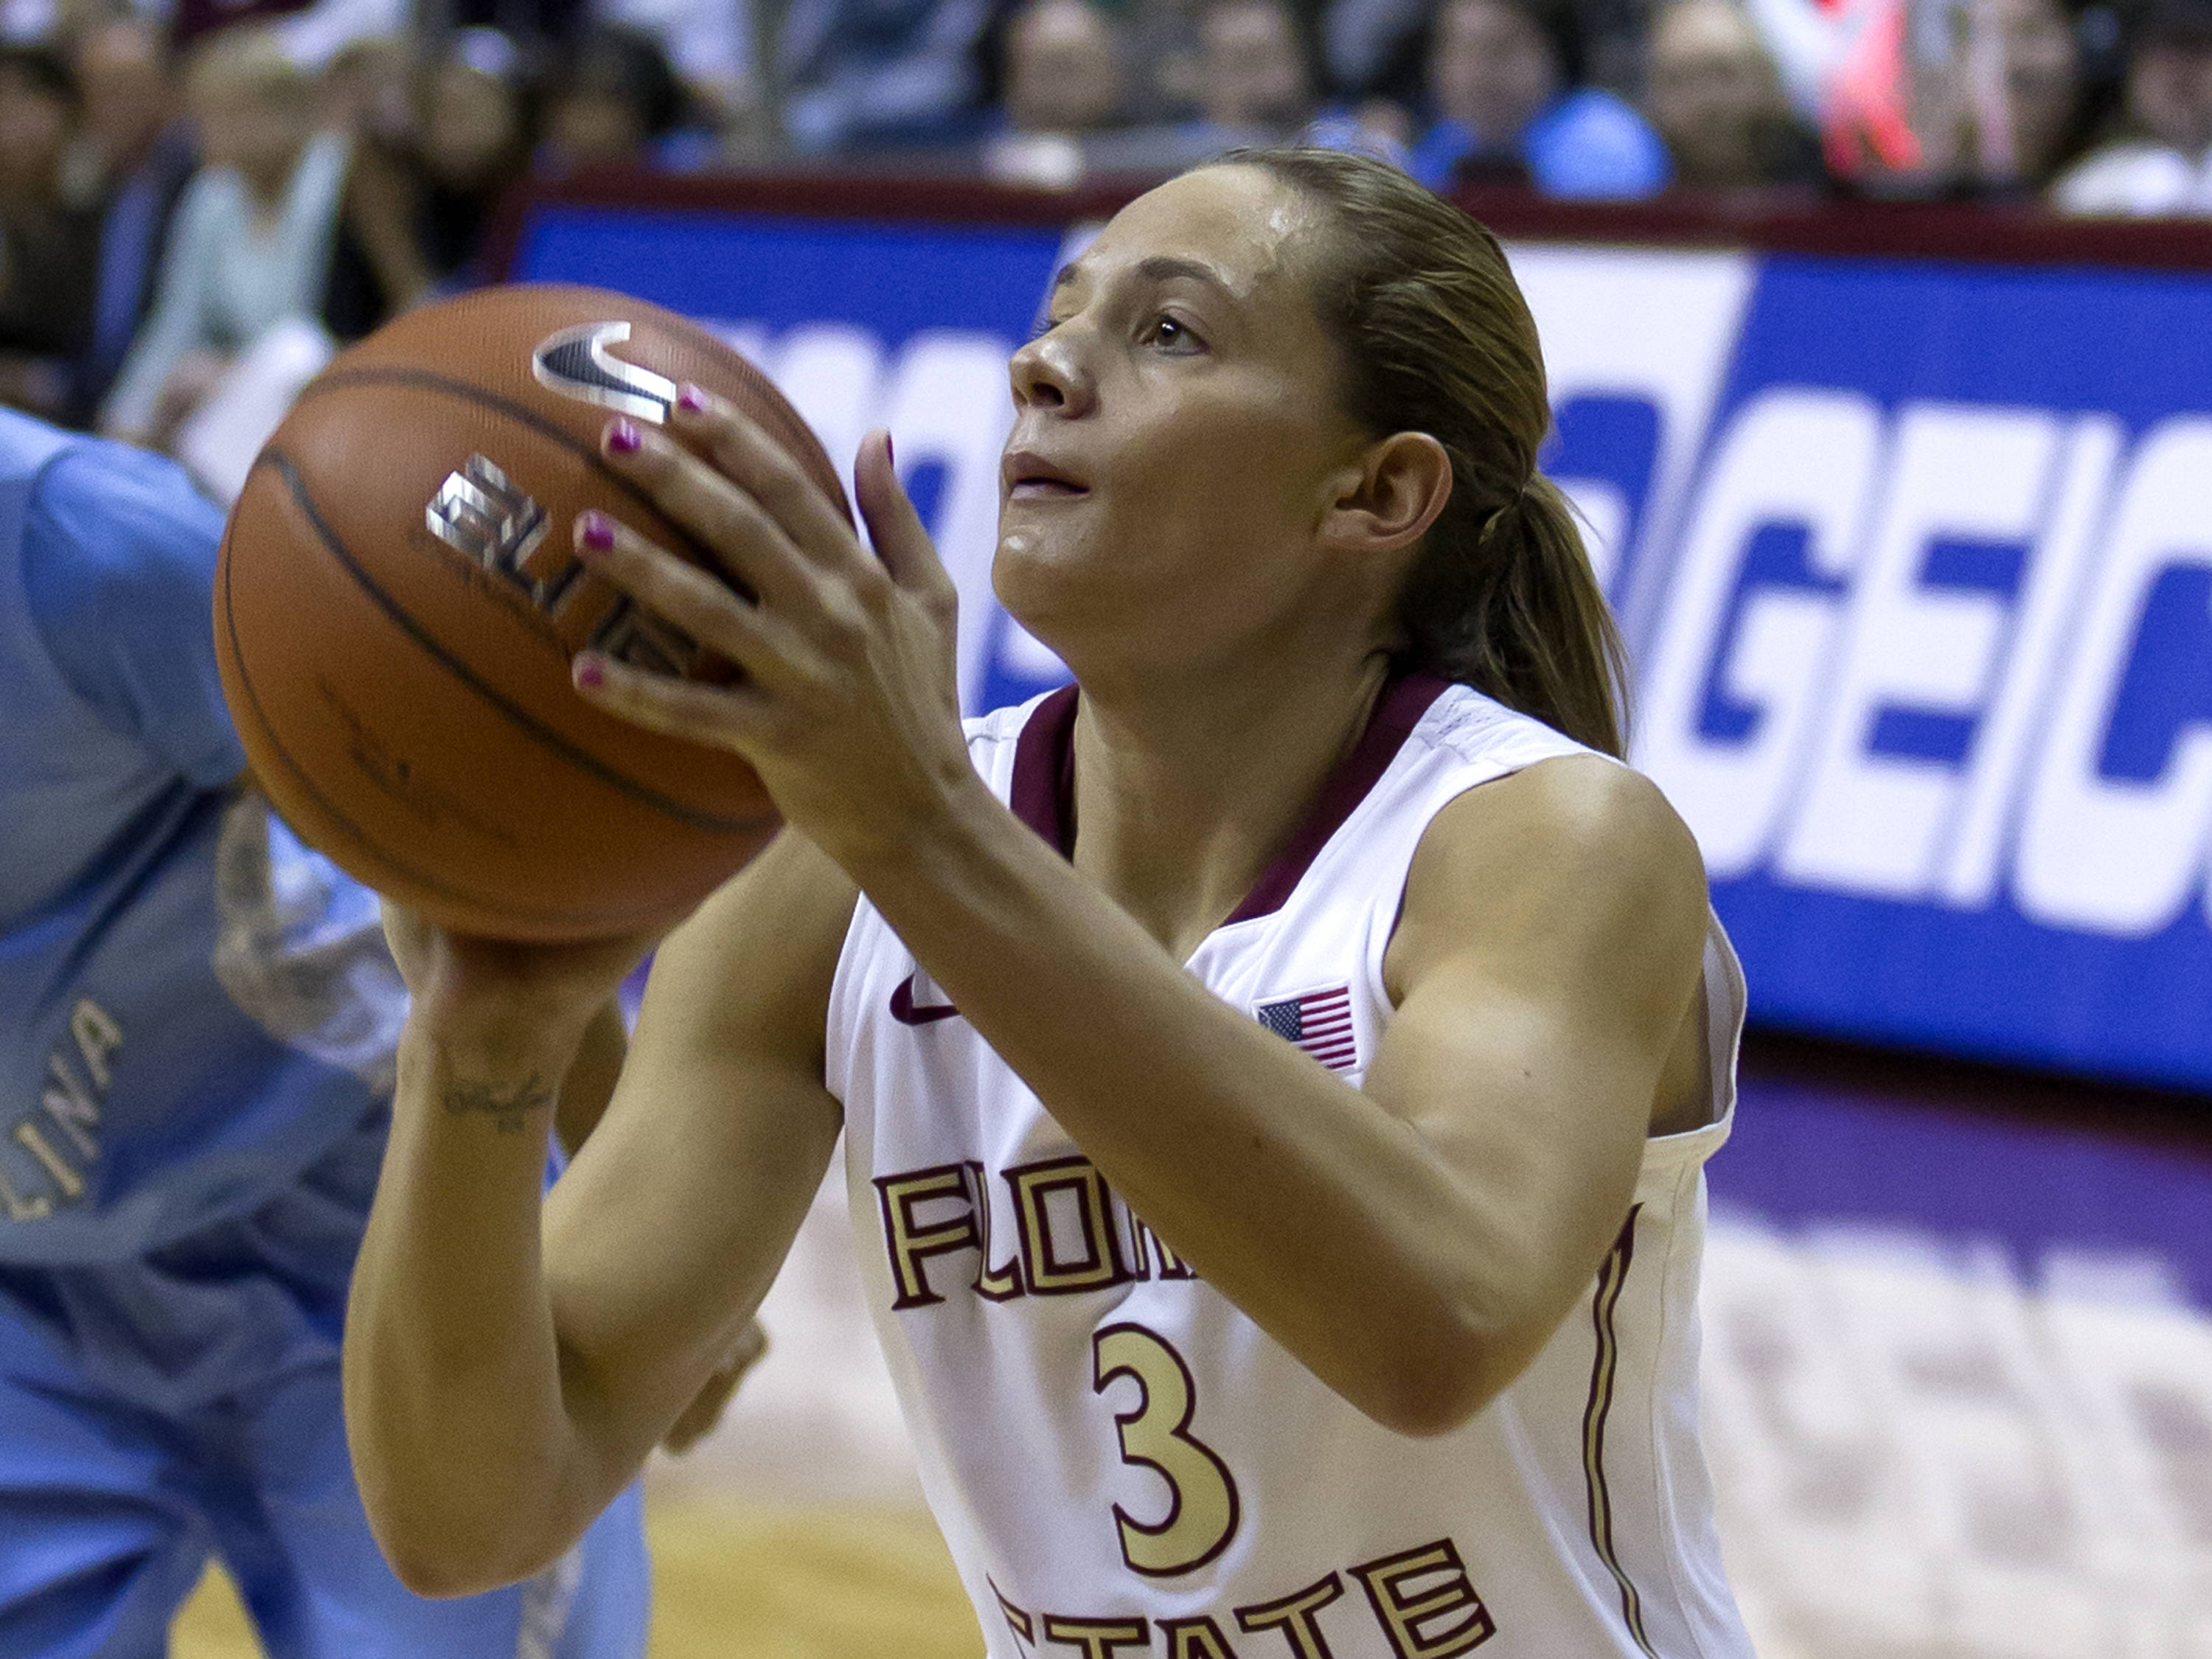 Alexa Deluzio (3), FSU vs NC, 02/17/13. (Photo by Steve Musco)